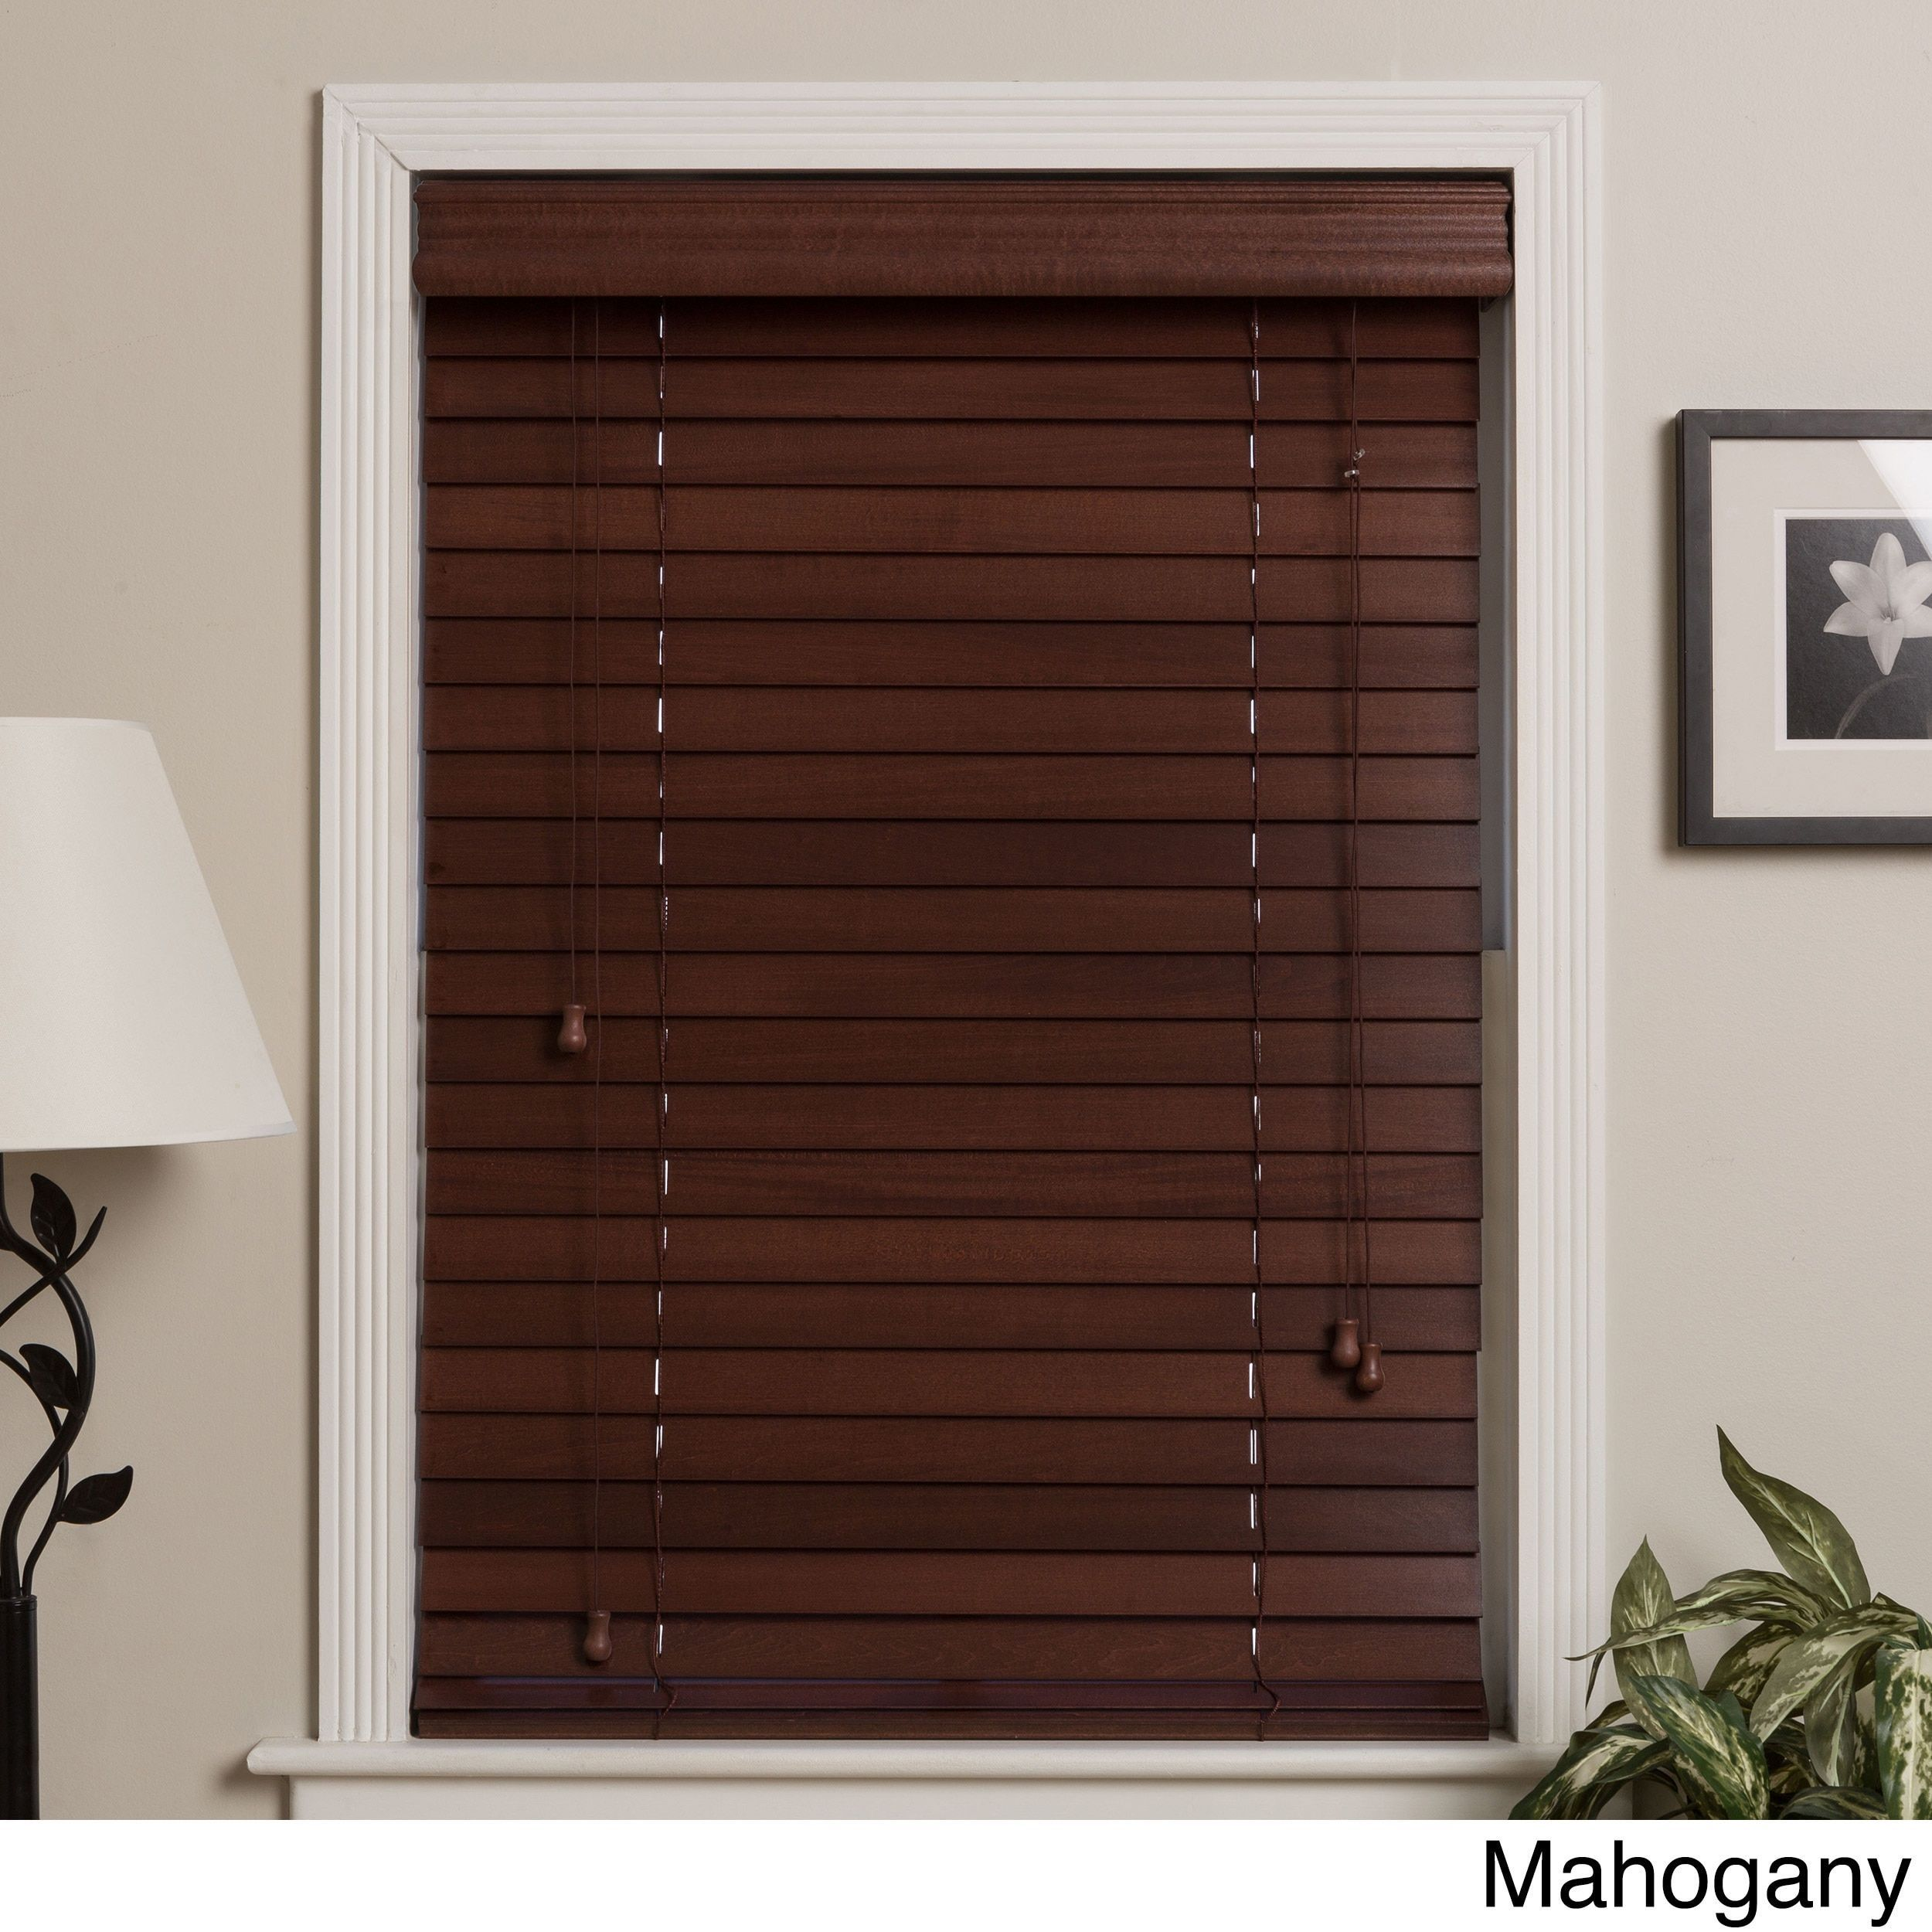 Safe-er-Grip Customized 35-inch Real Wood Window Blinds